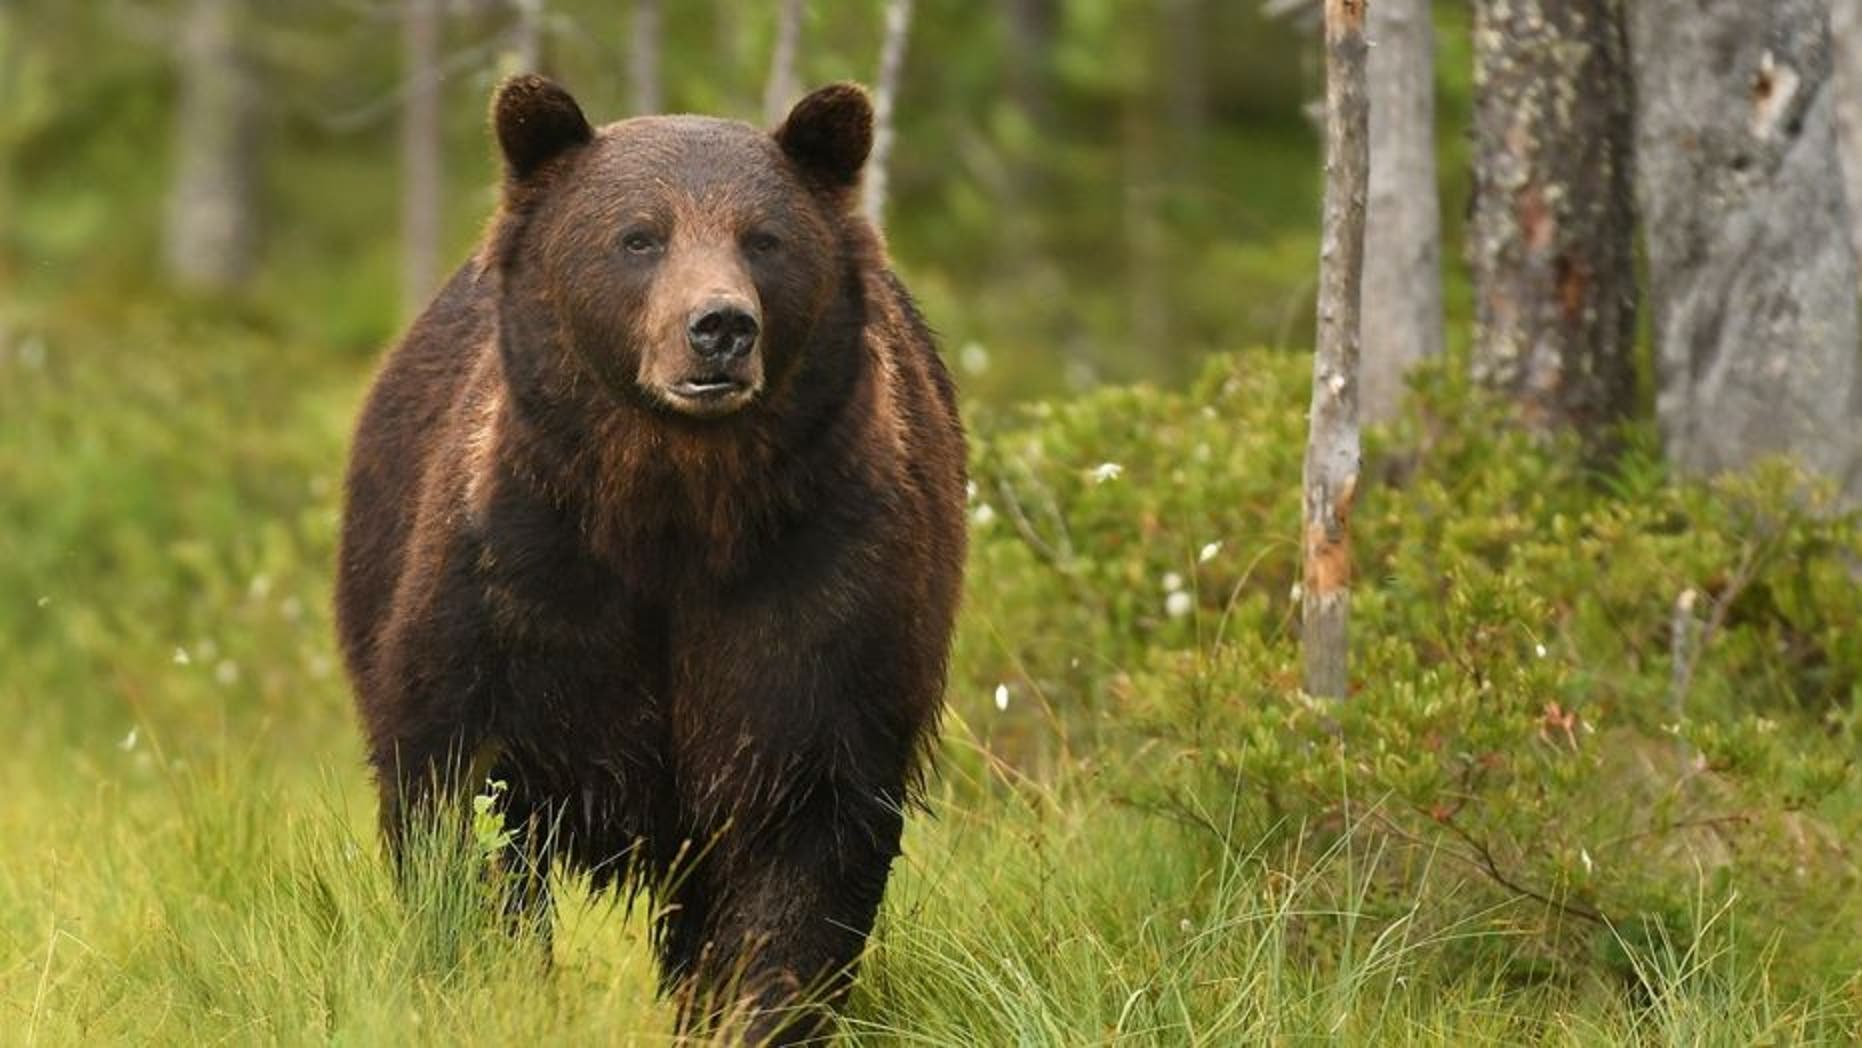 A U.S. judge on Monday ordered federal protections restored for grizzly bears in the Northern Rocky Mountains, a move that blocks the first hunts planned for the animals in the Lower 48 states in almost three decades.